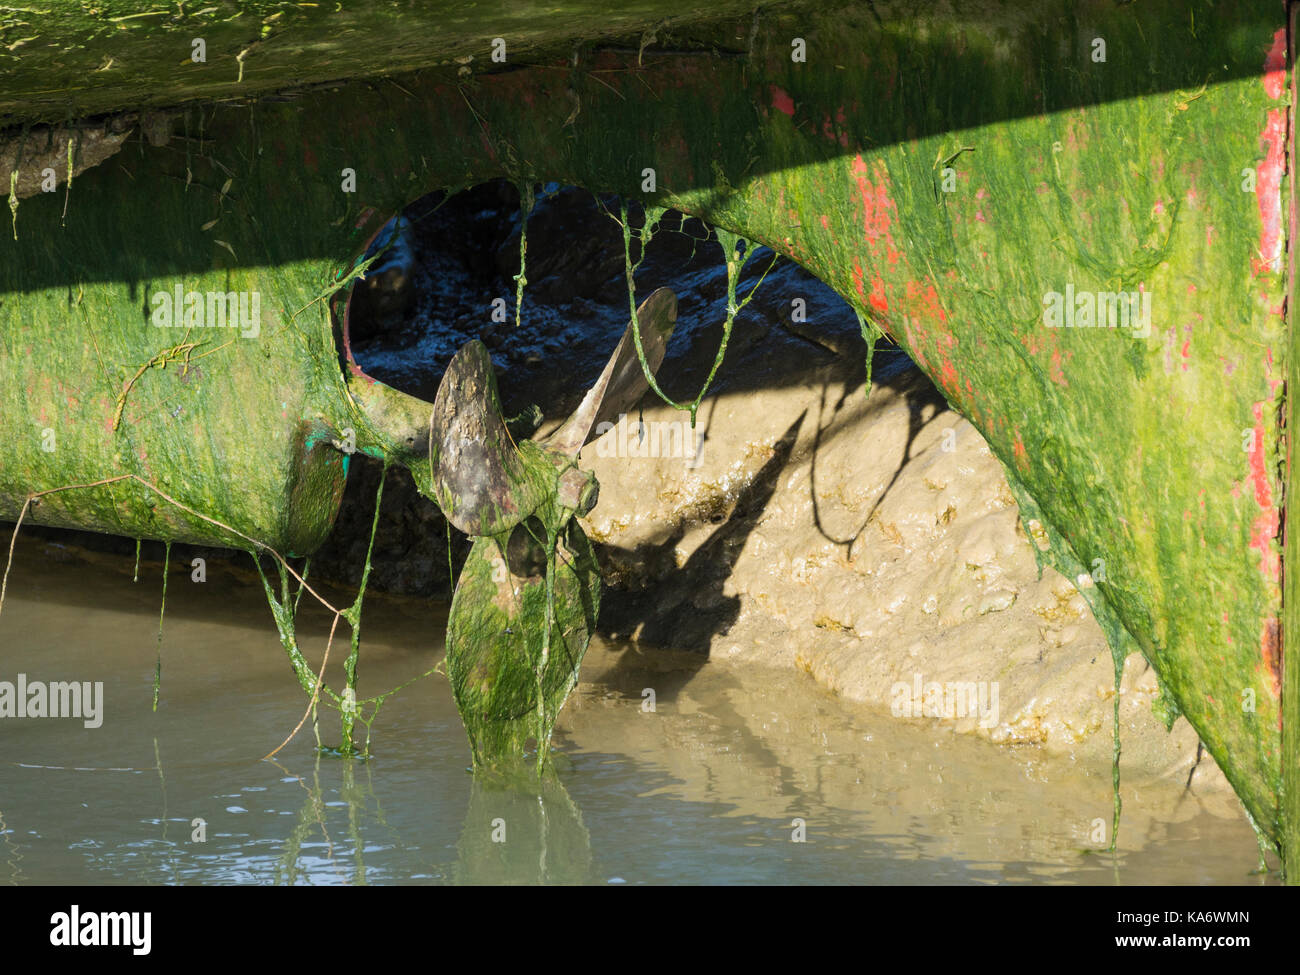 Hull of a boat out of water showing the propeller and rudder covered in green algae. - Stock Image